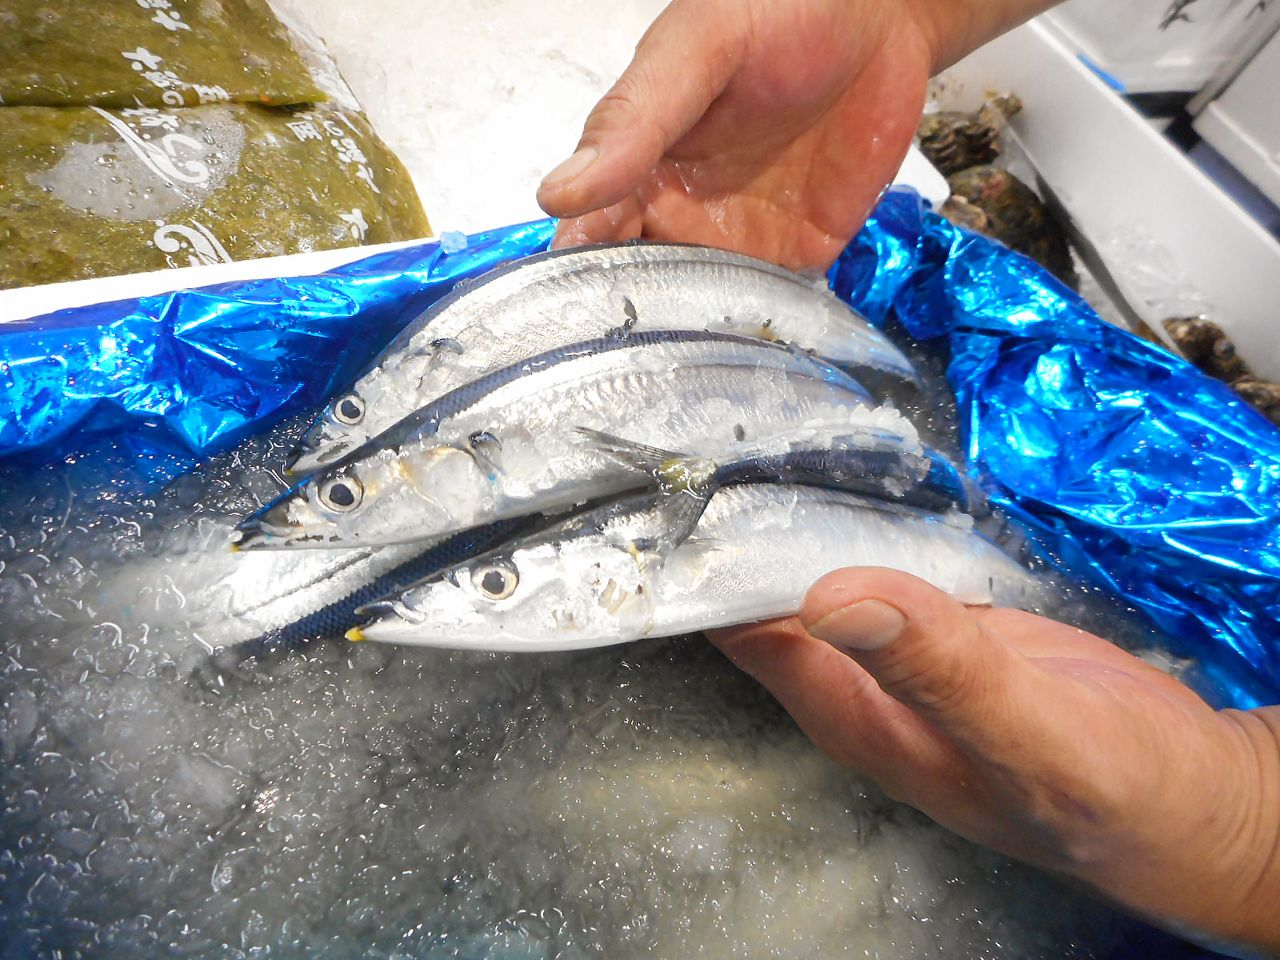 Buyers at Toyosu Fish Market have taken issue with the lower quality of early season saury. (© Kawamoto Daigo)